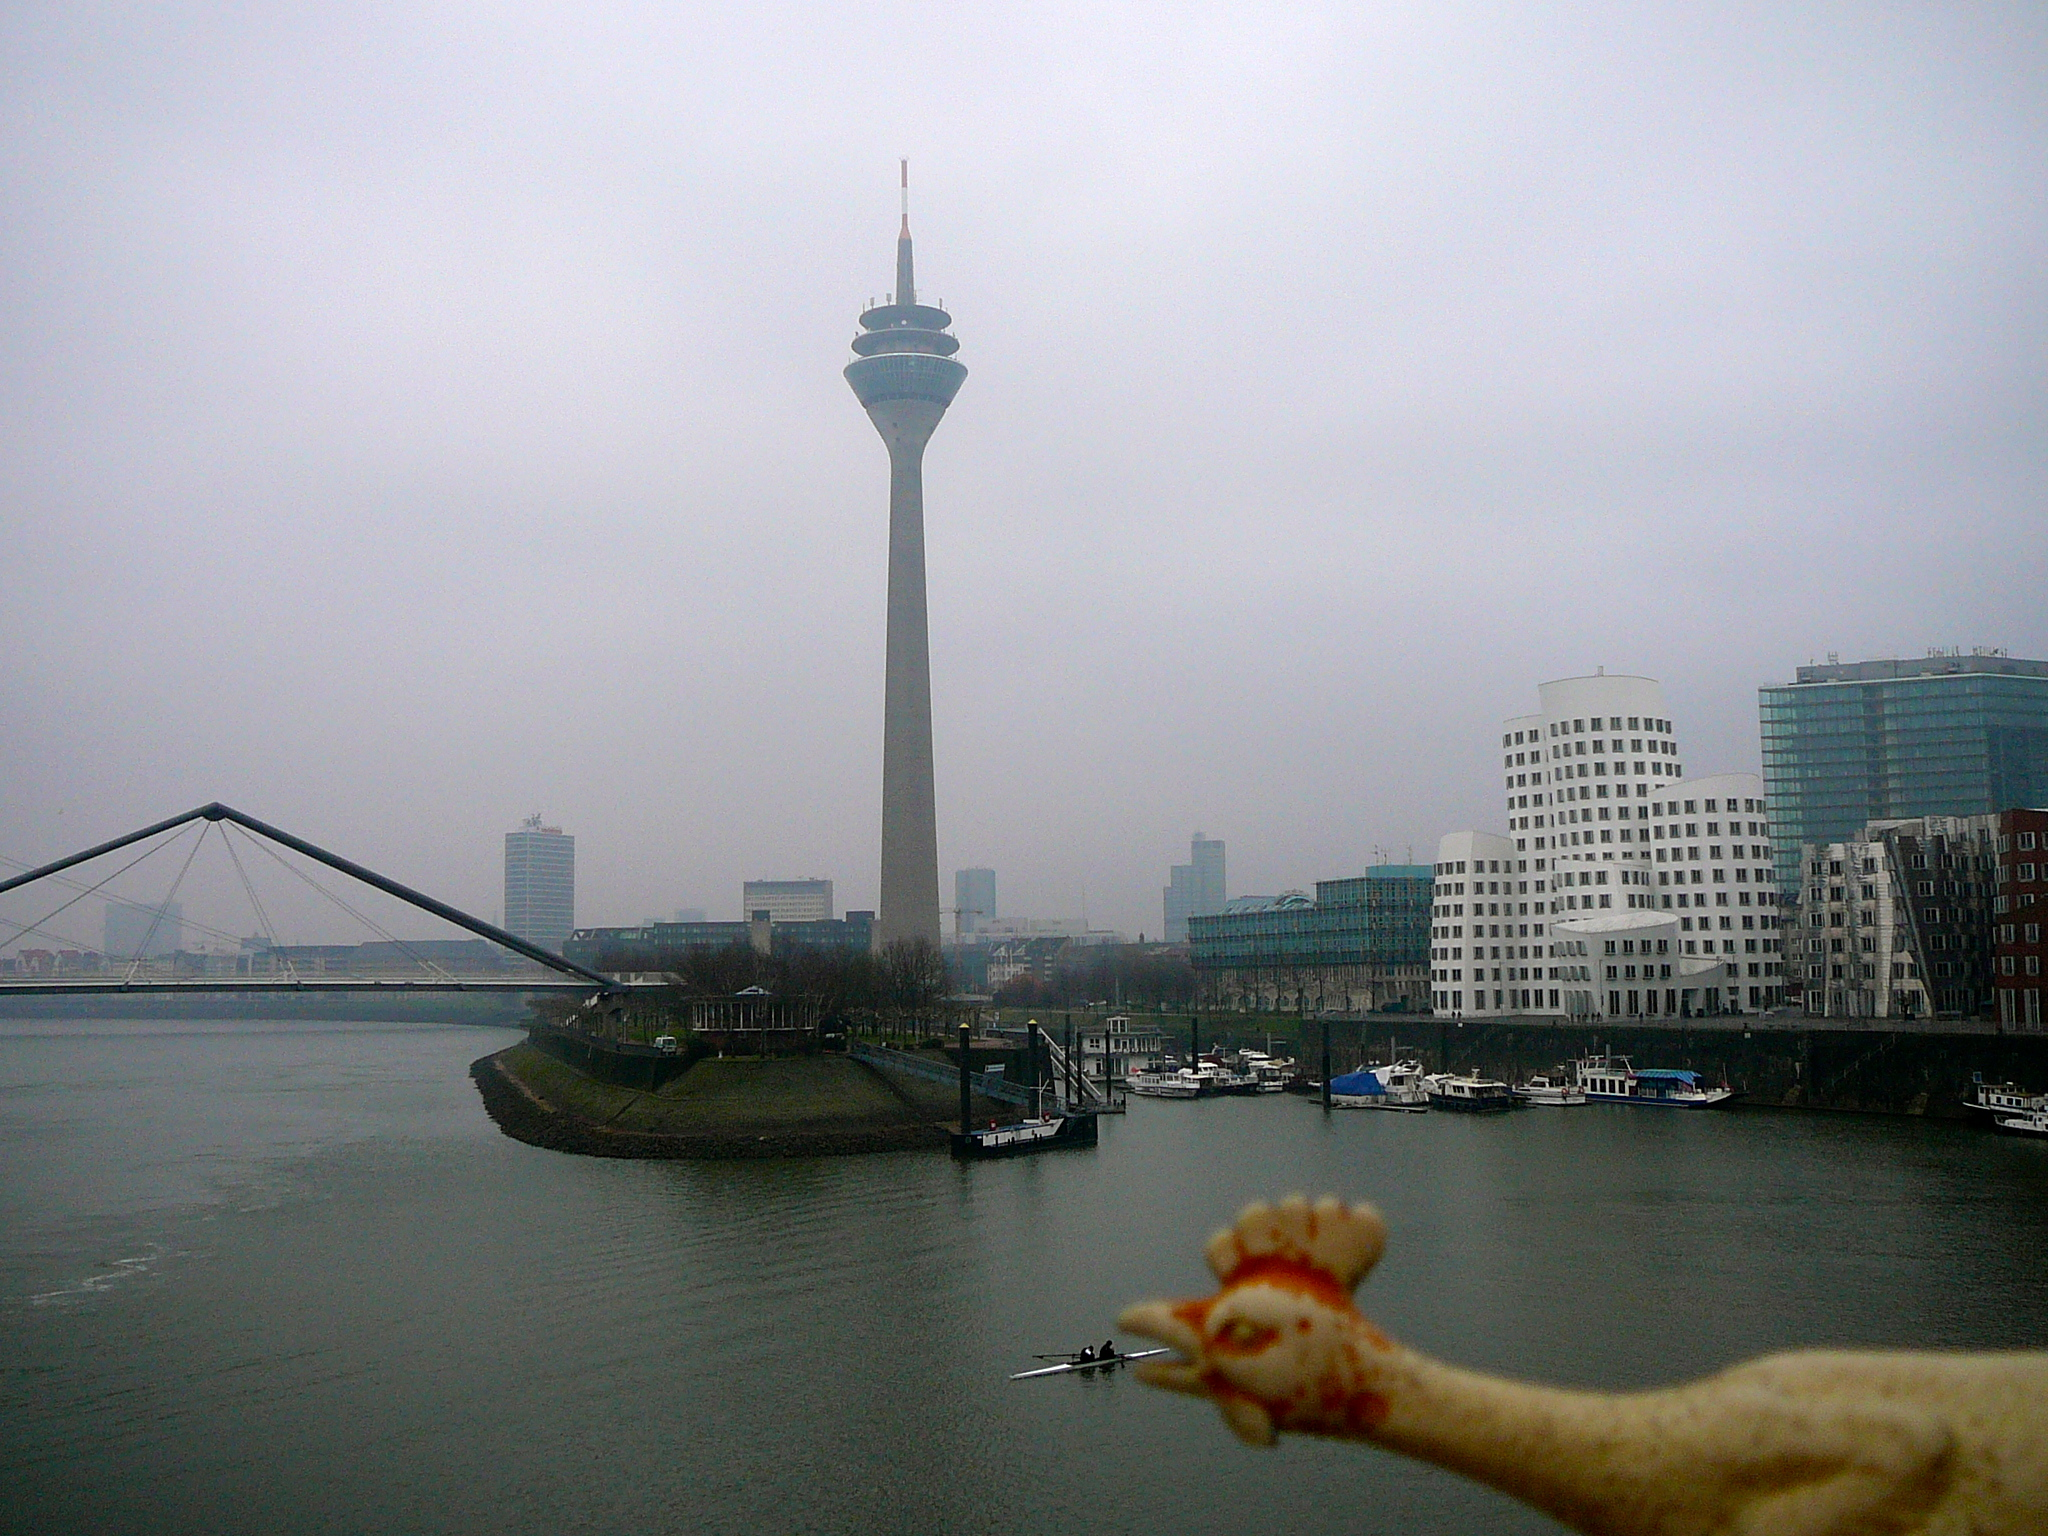 Pluck Wuck The Adventures Of A Rubber Chicken